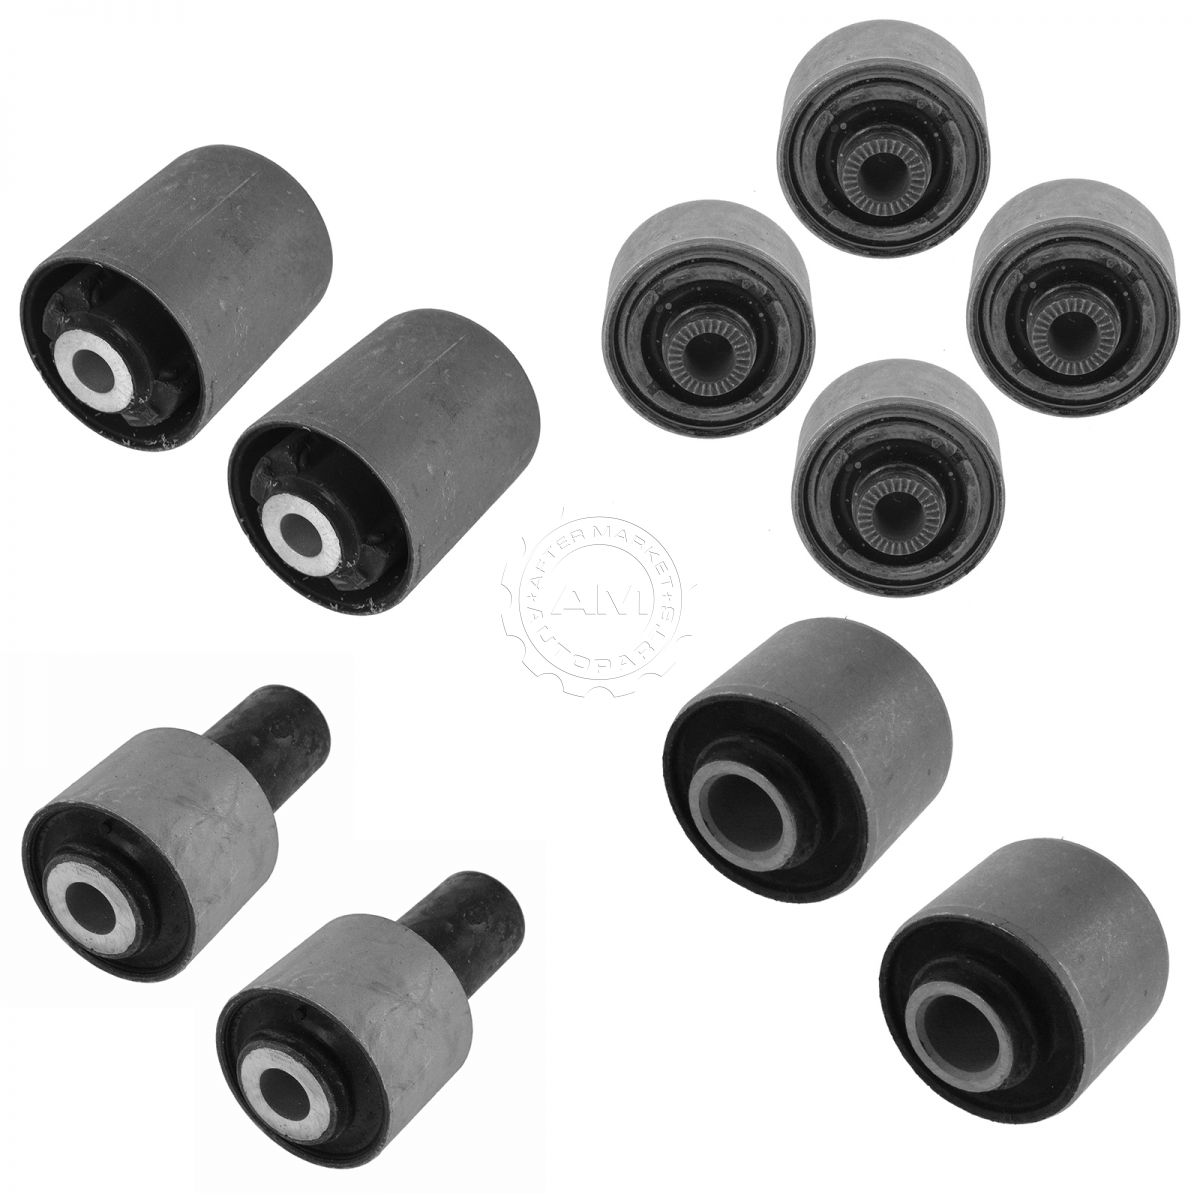 2014 Chrysler 300 Clevis Left Front Suspension Awd: Control Arm Bushing Upper Lower Front Rear Kit Set Of 10